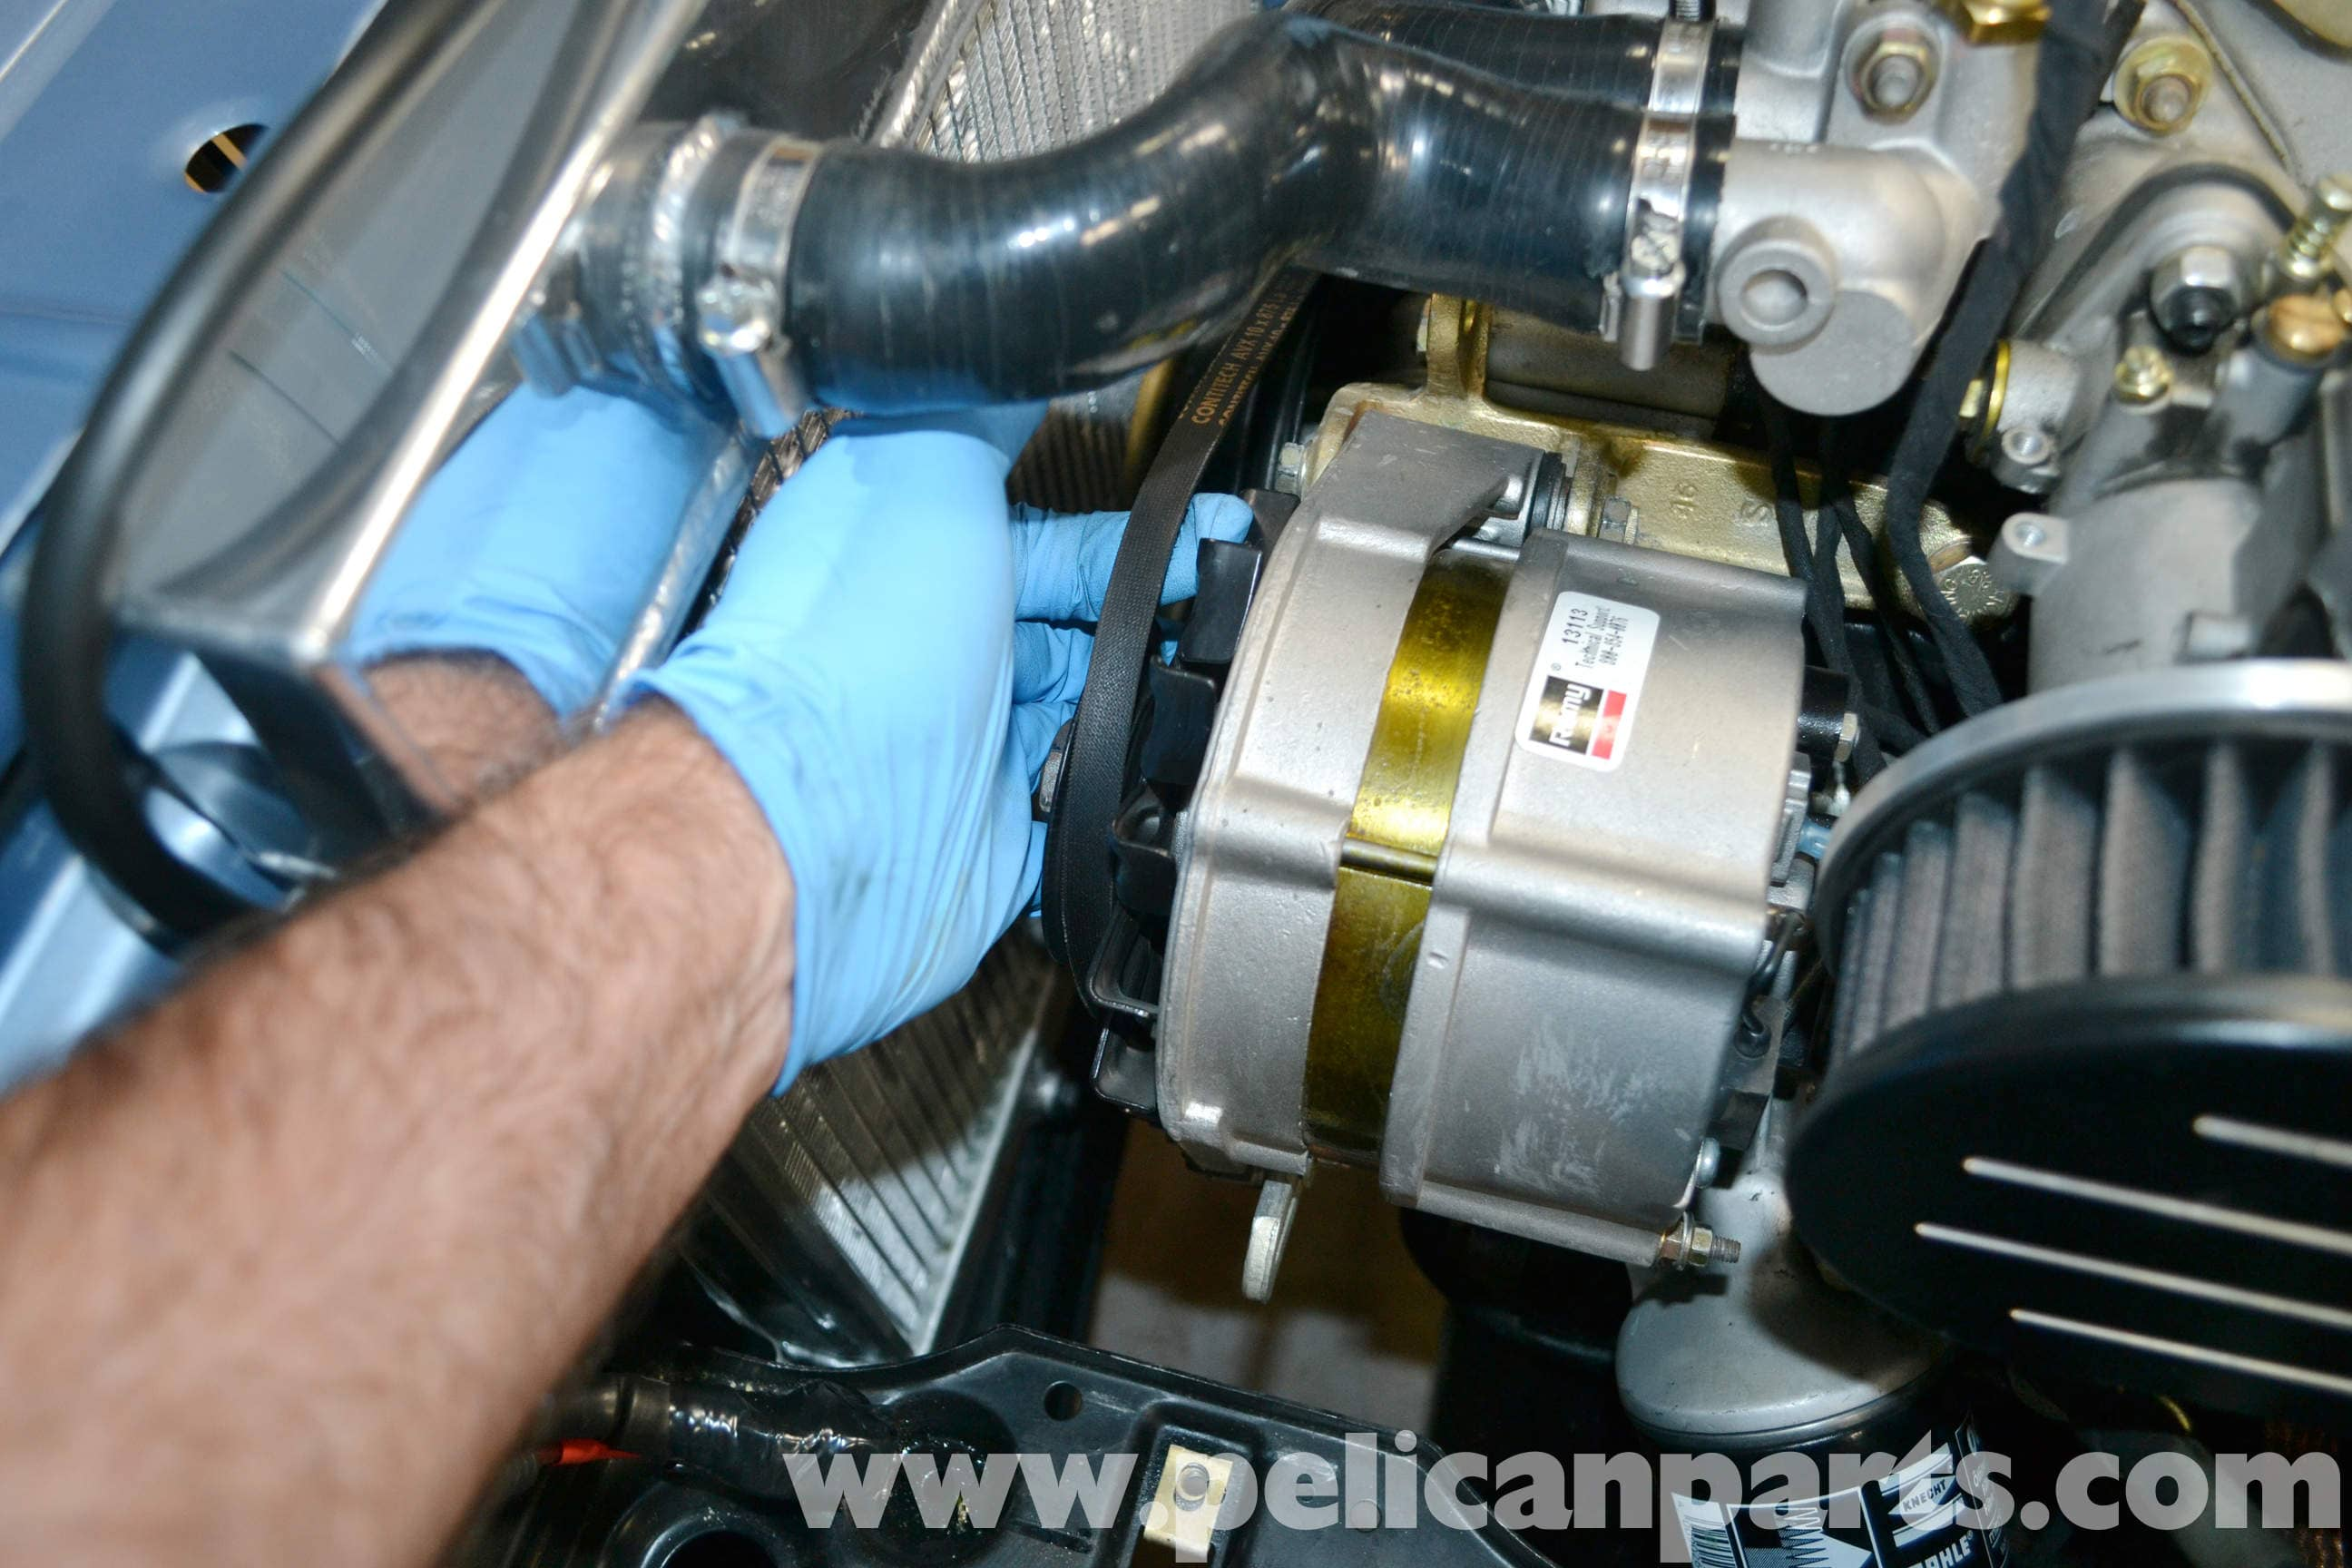 BMW 2002 Alternator Replacement (1966-1976) | Pelican Parts DIY ...